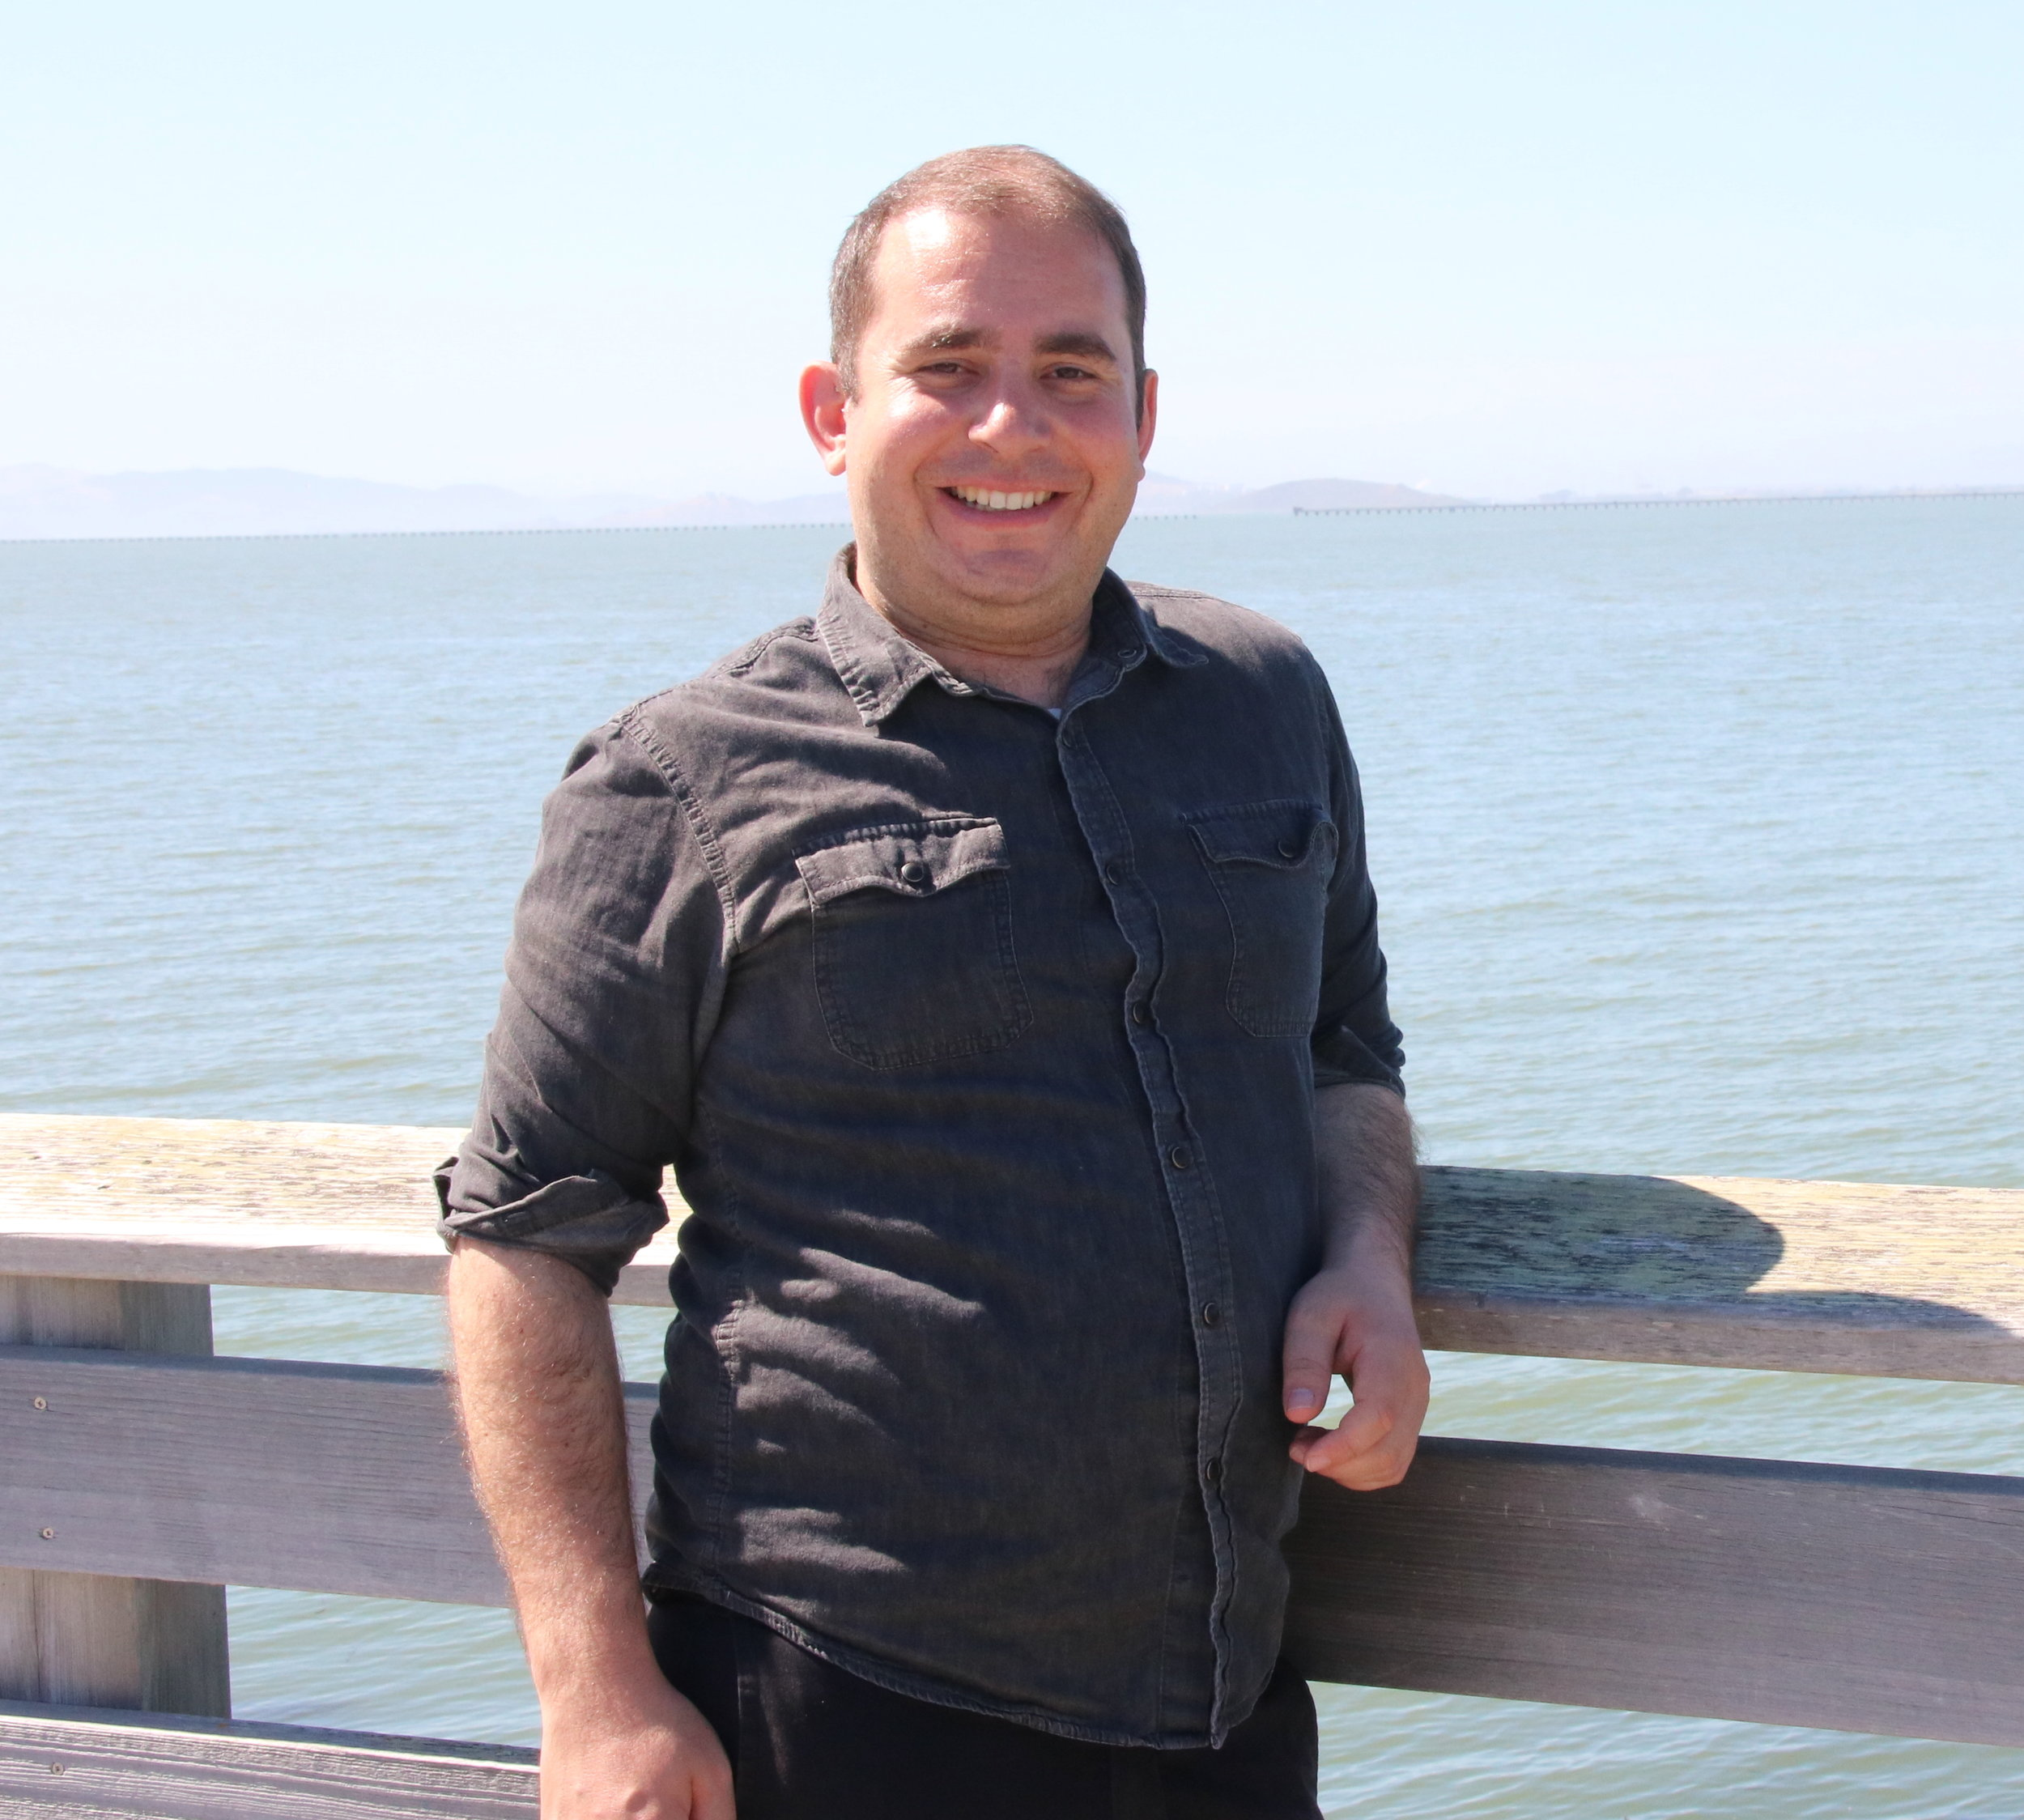 Eric Young, AMFT - Napa Valley Attachment-Based PsychotherapySan Francisco Bay Area LGBTQ Relationship Therapist for Individuals and Couples